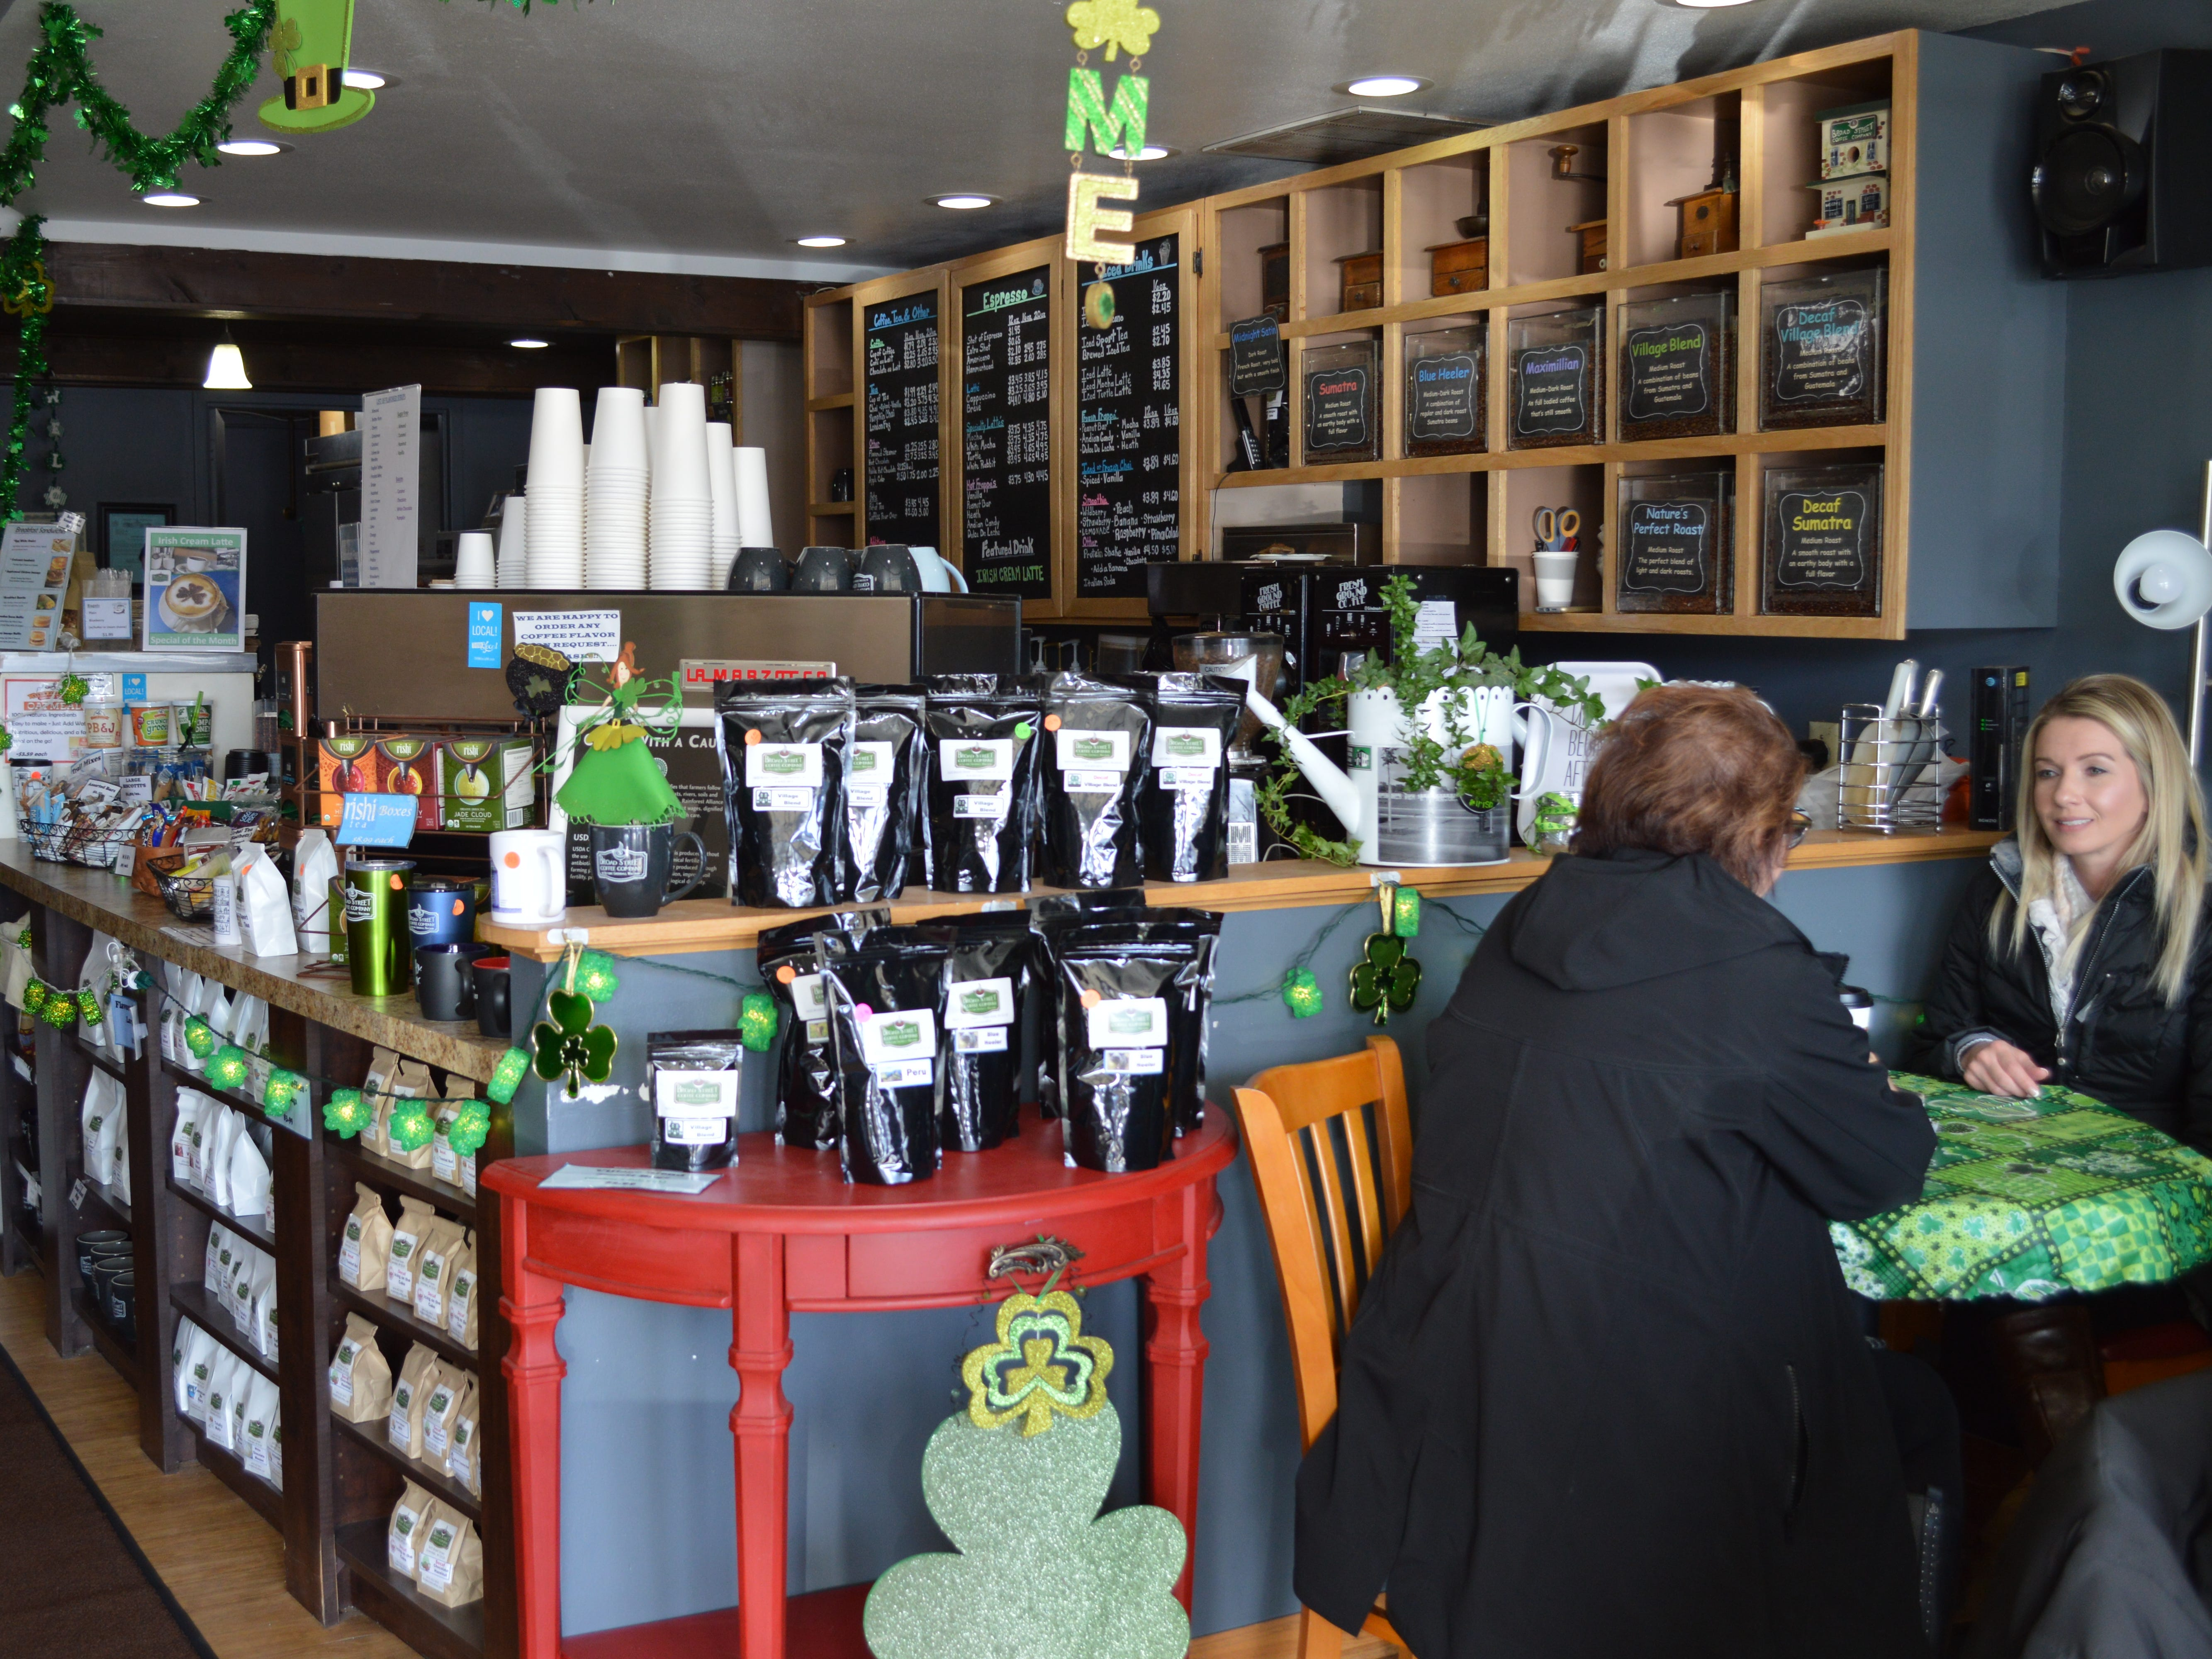 Every weekday morning, a group of about 30 locals meet at Broad Street Coffee Co. in Greendale.